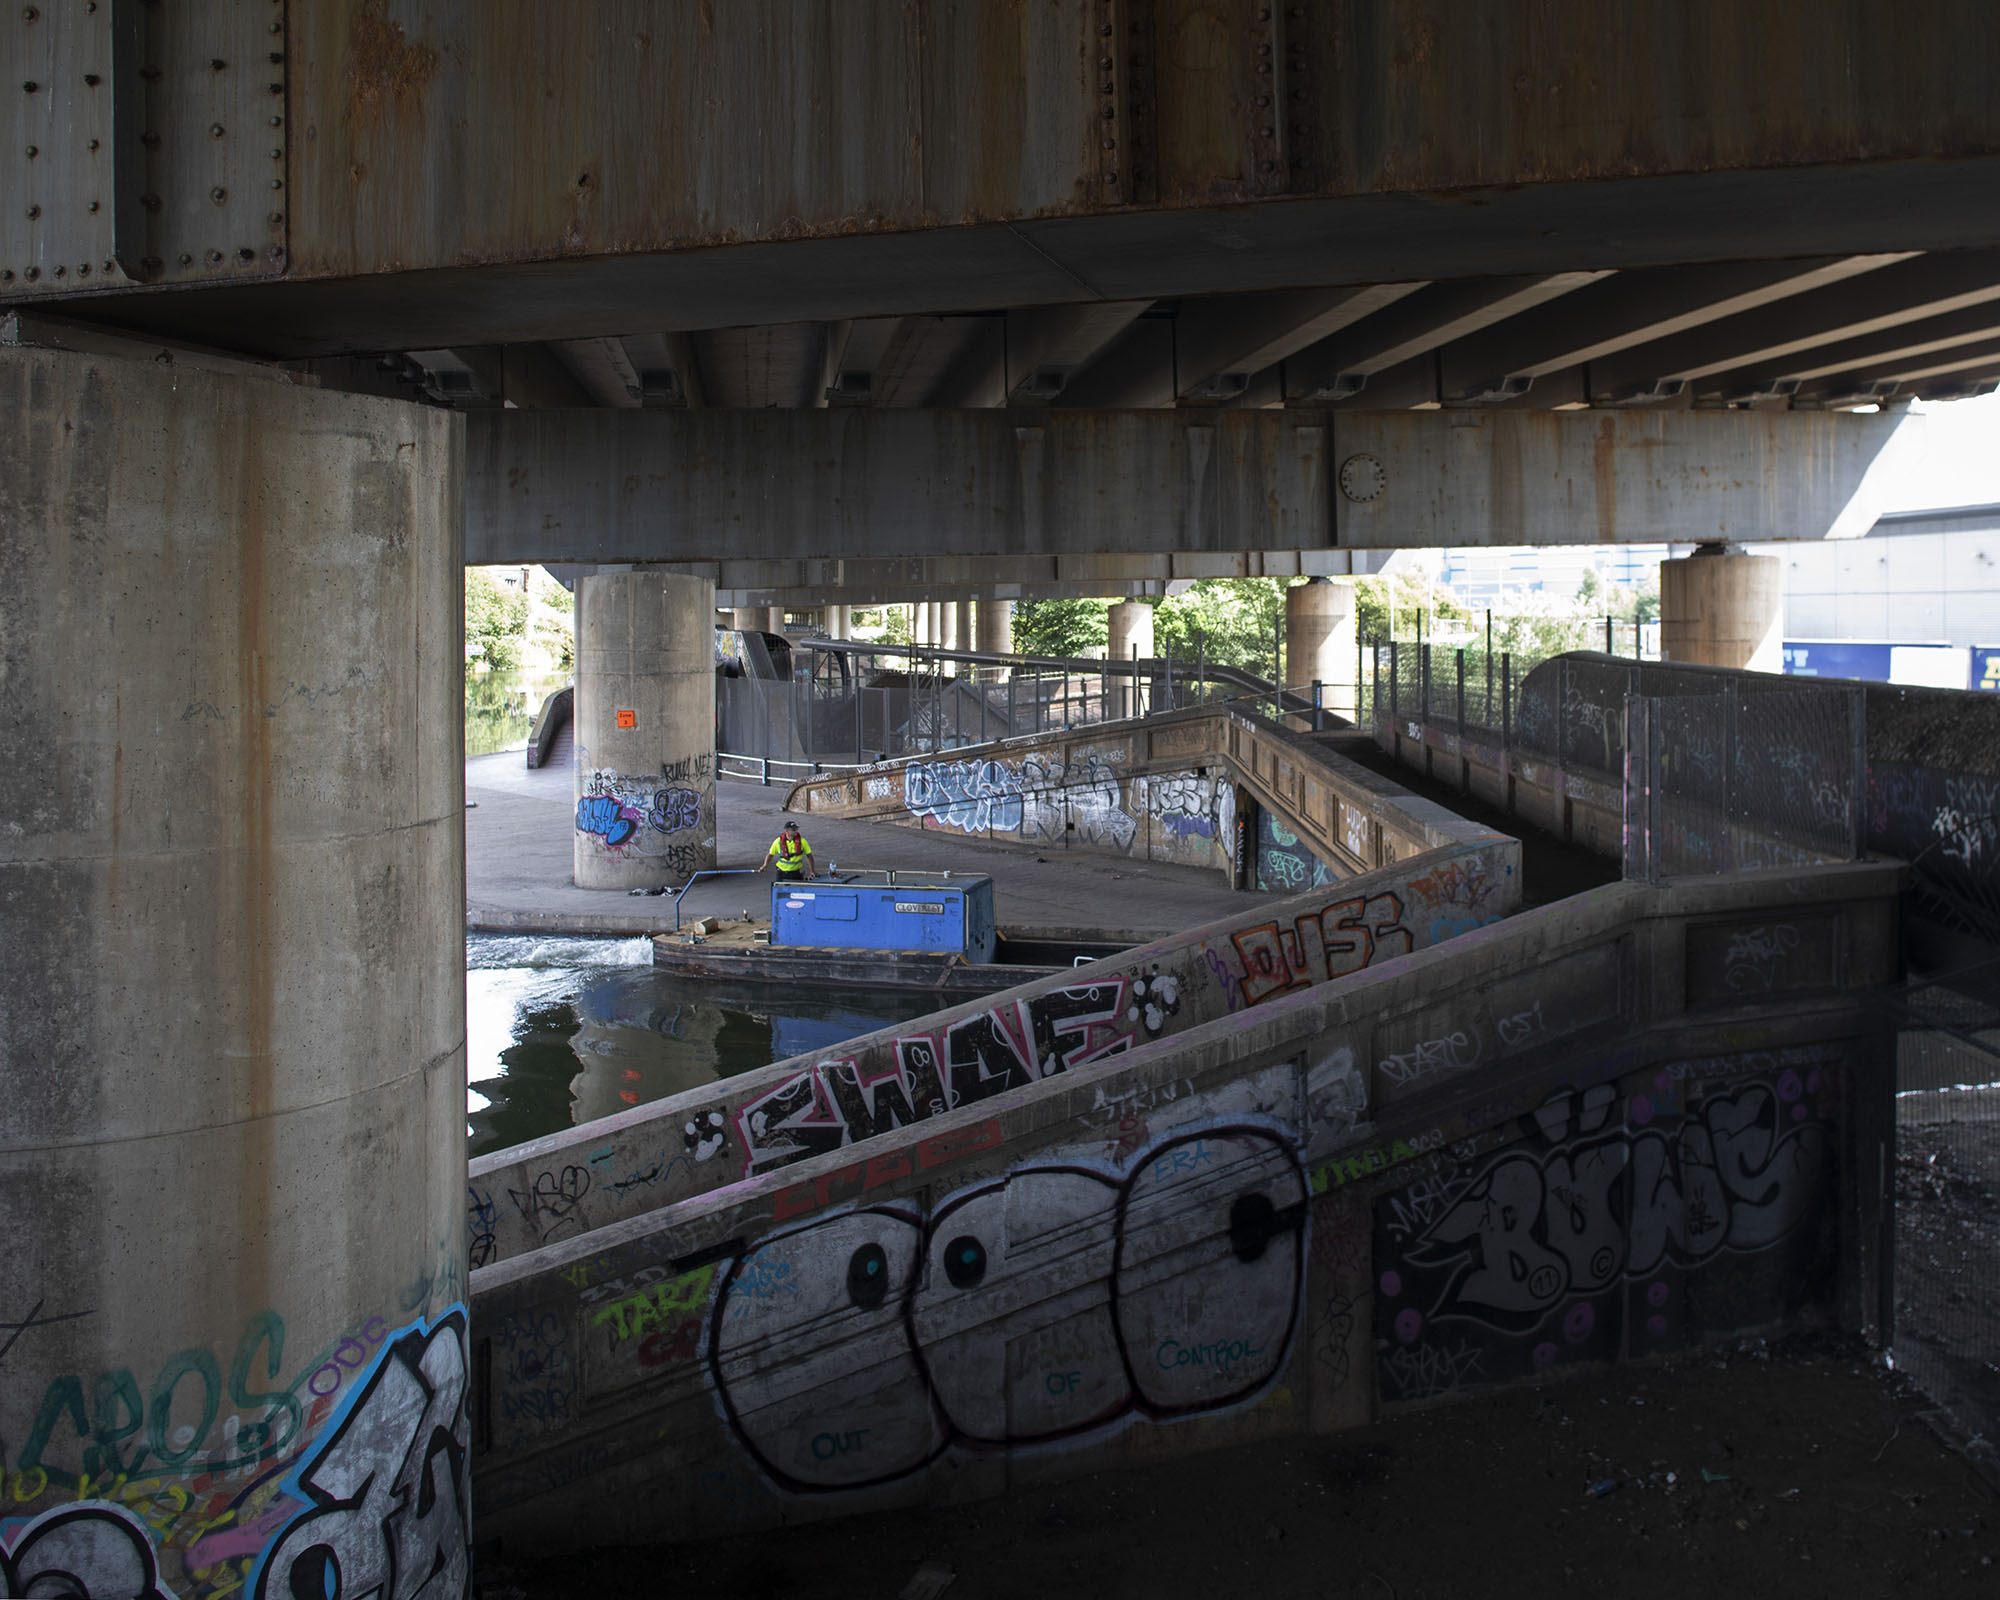 20180725_spaghetti junction_080.jpg